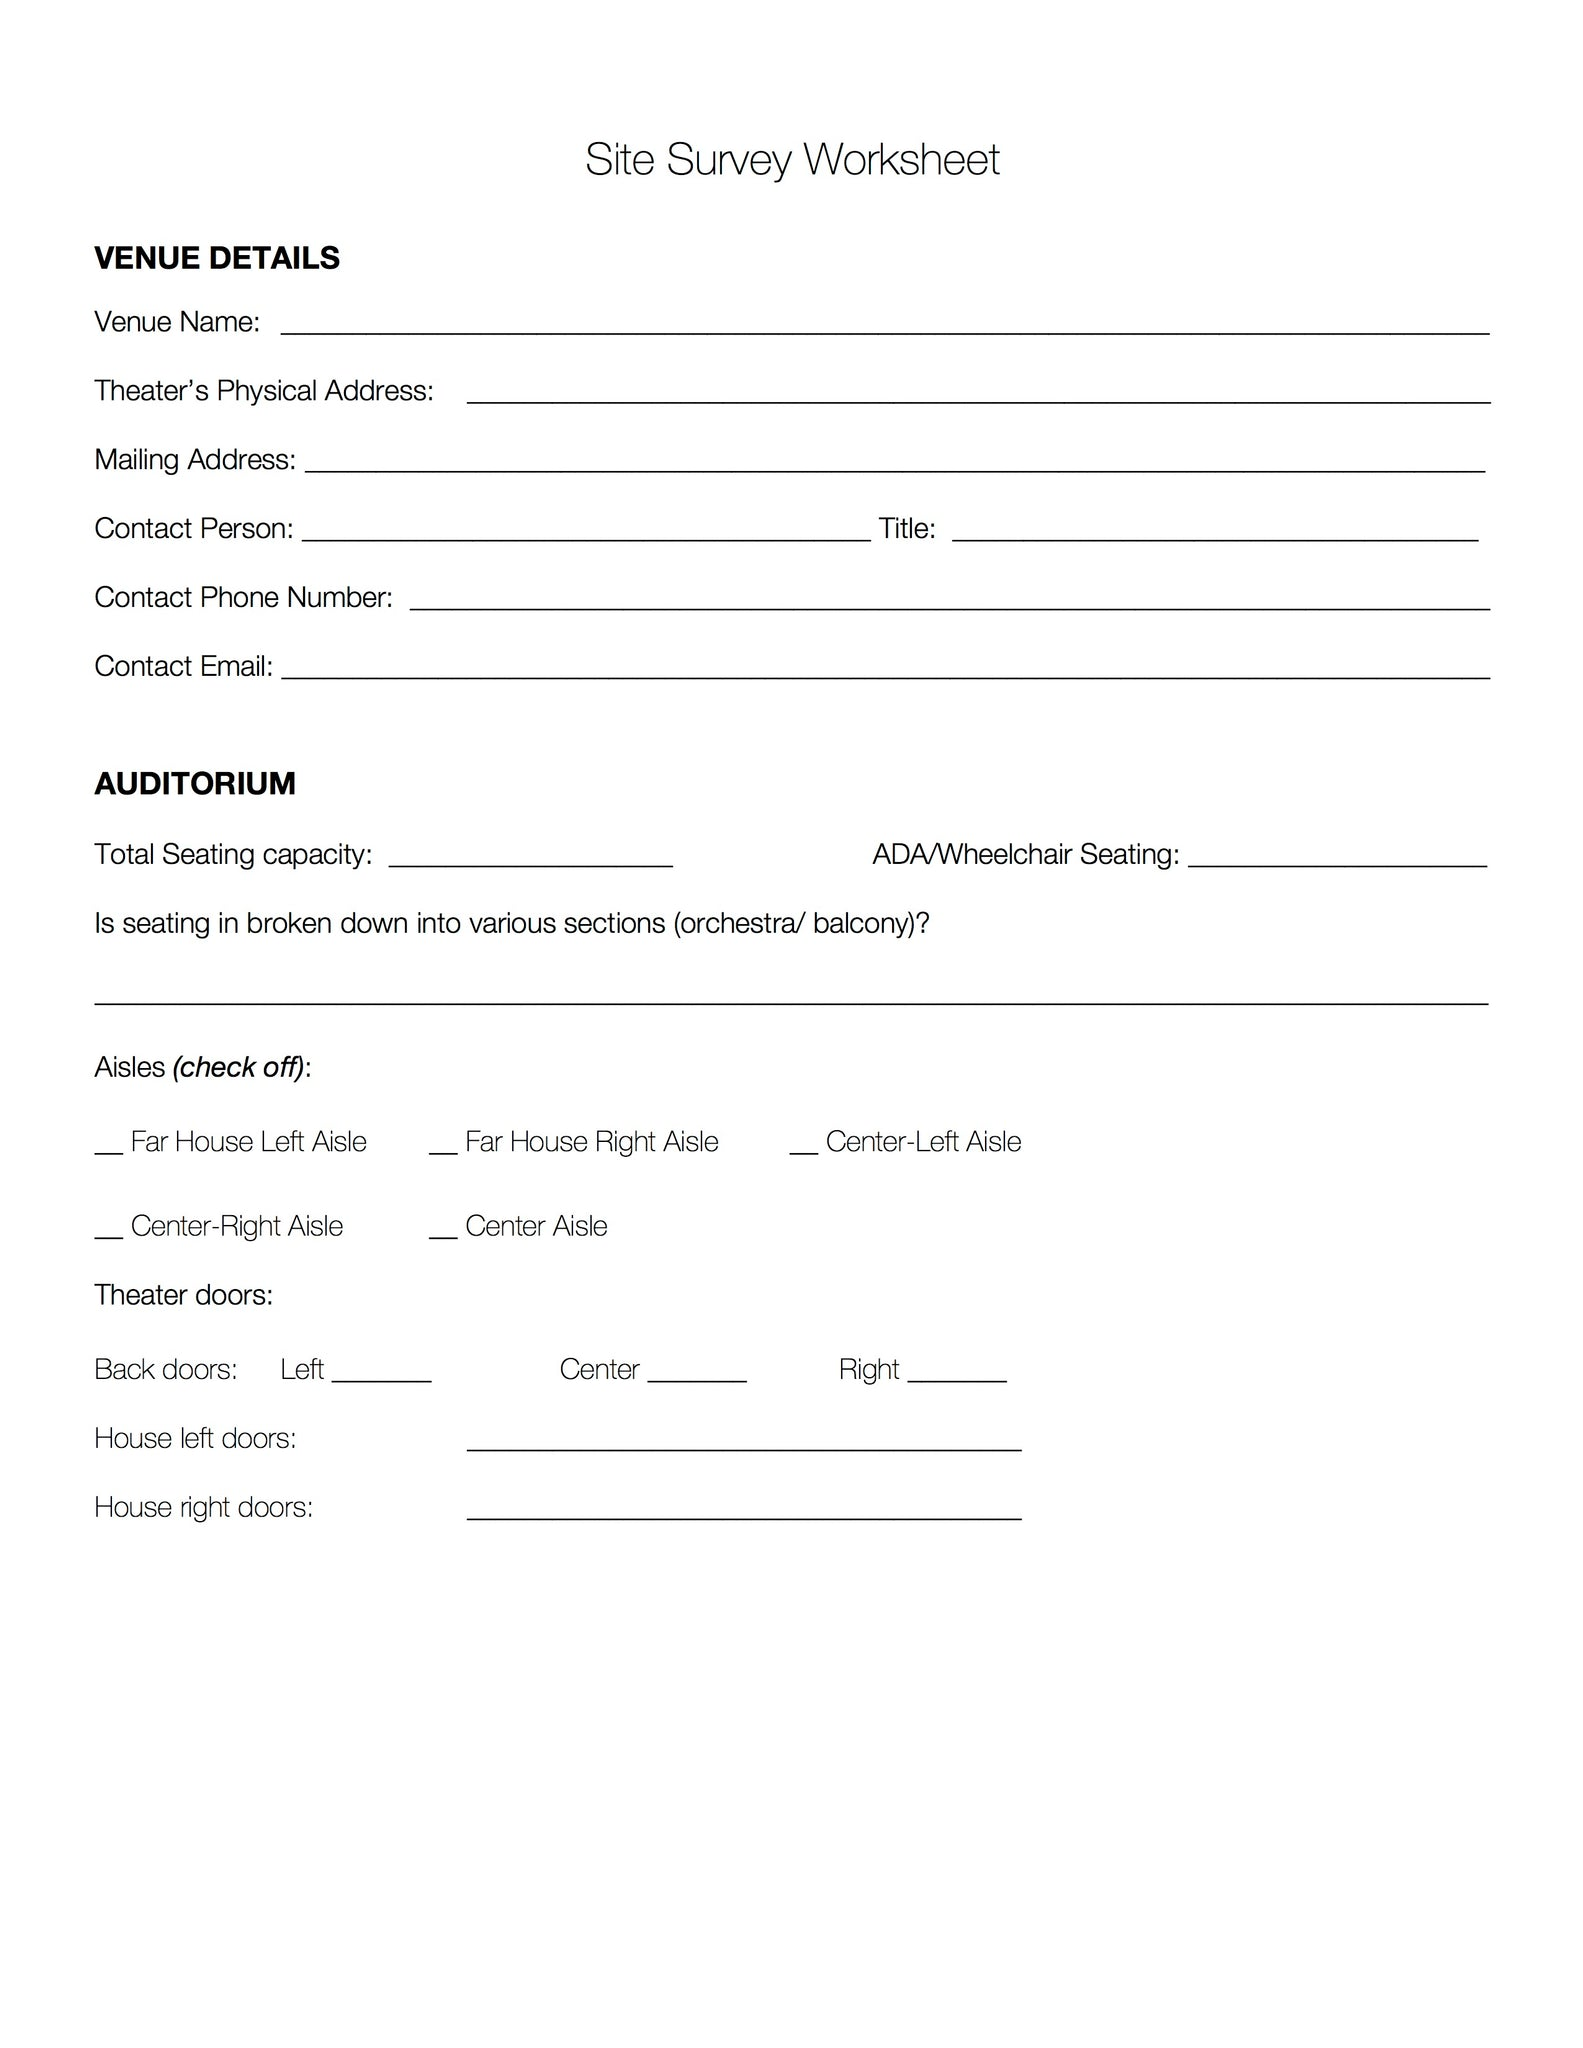 Site Survey Form Template